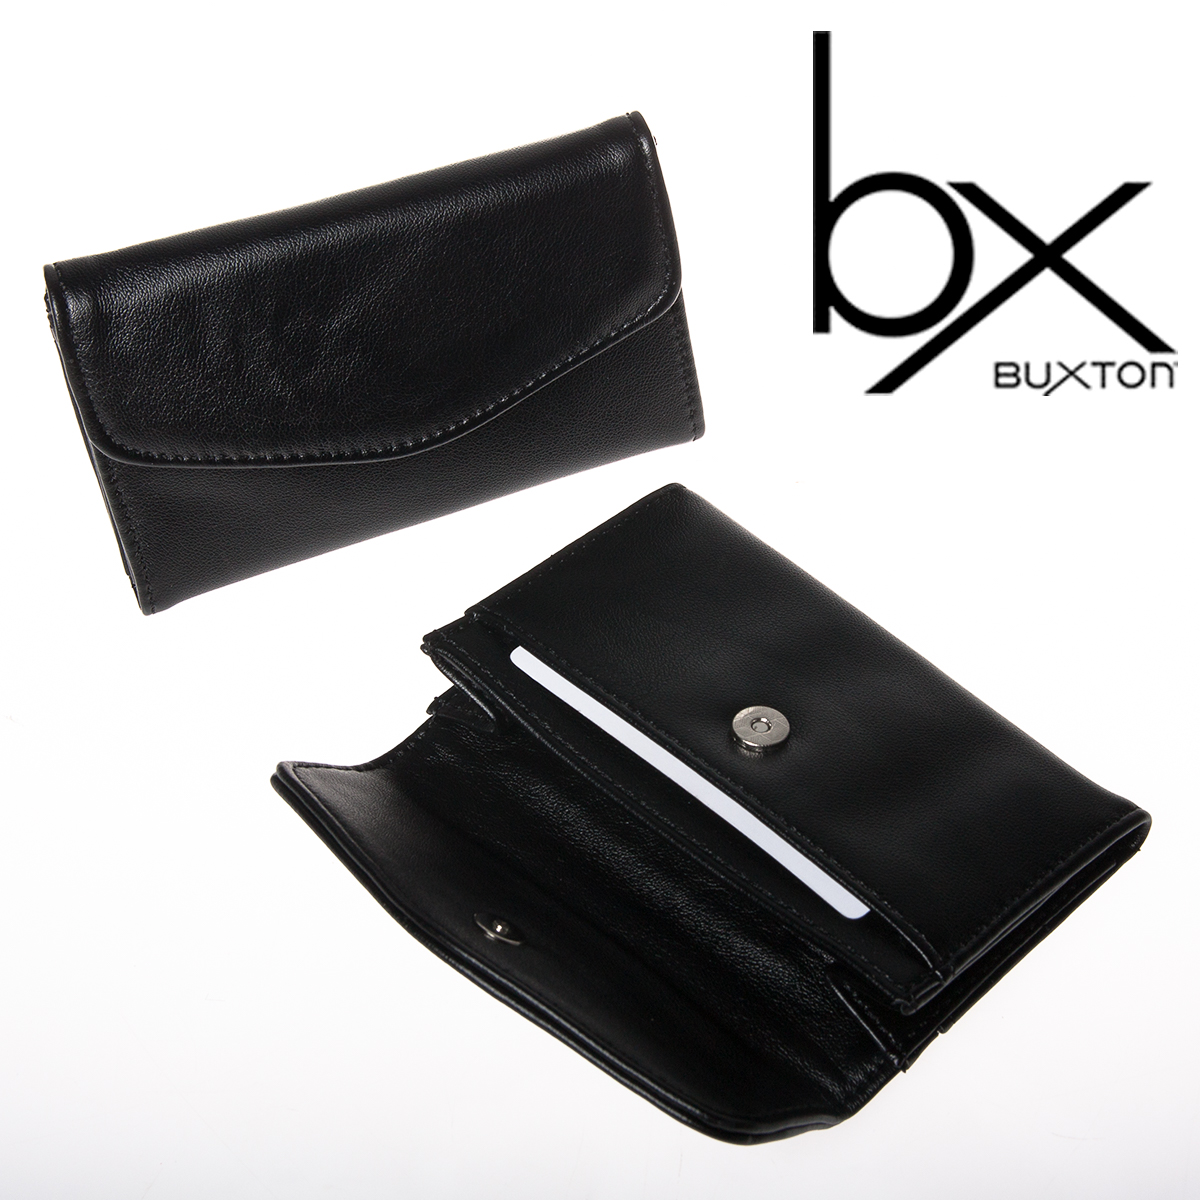 2 Buxton Black Faux Leather Snap Business Card Case Holder Wallet ...